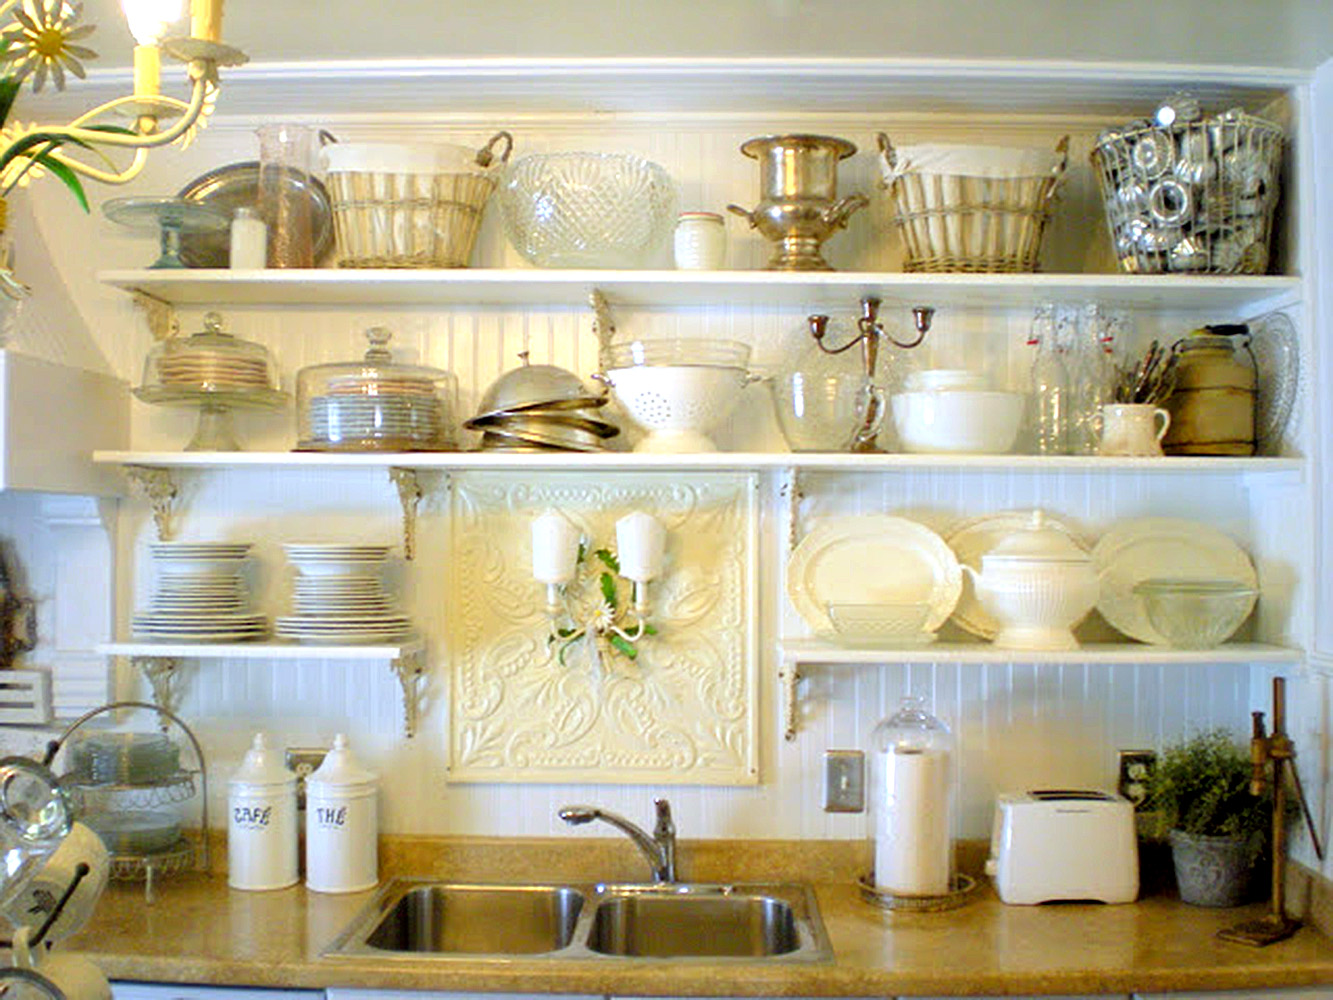 Kitchen Shelves Decorating Cottage Kitchens Cabinetry And Hardware 1 Gjconstructs